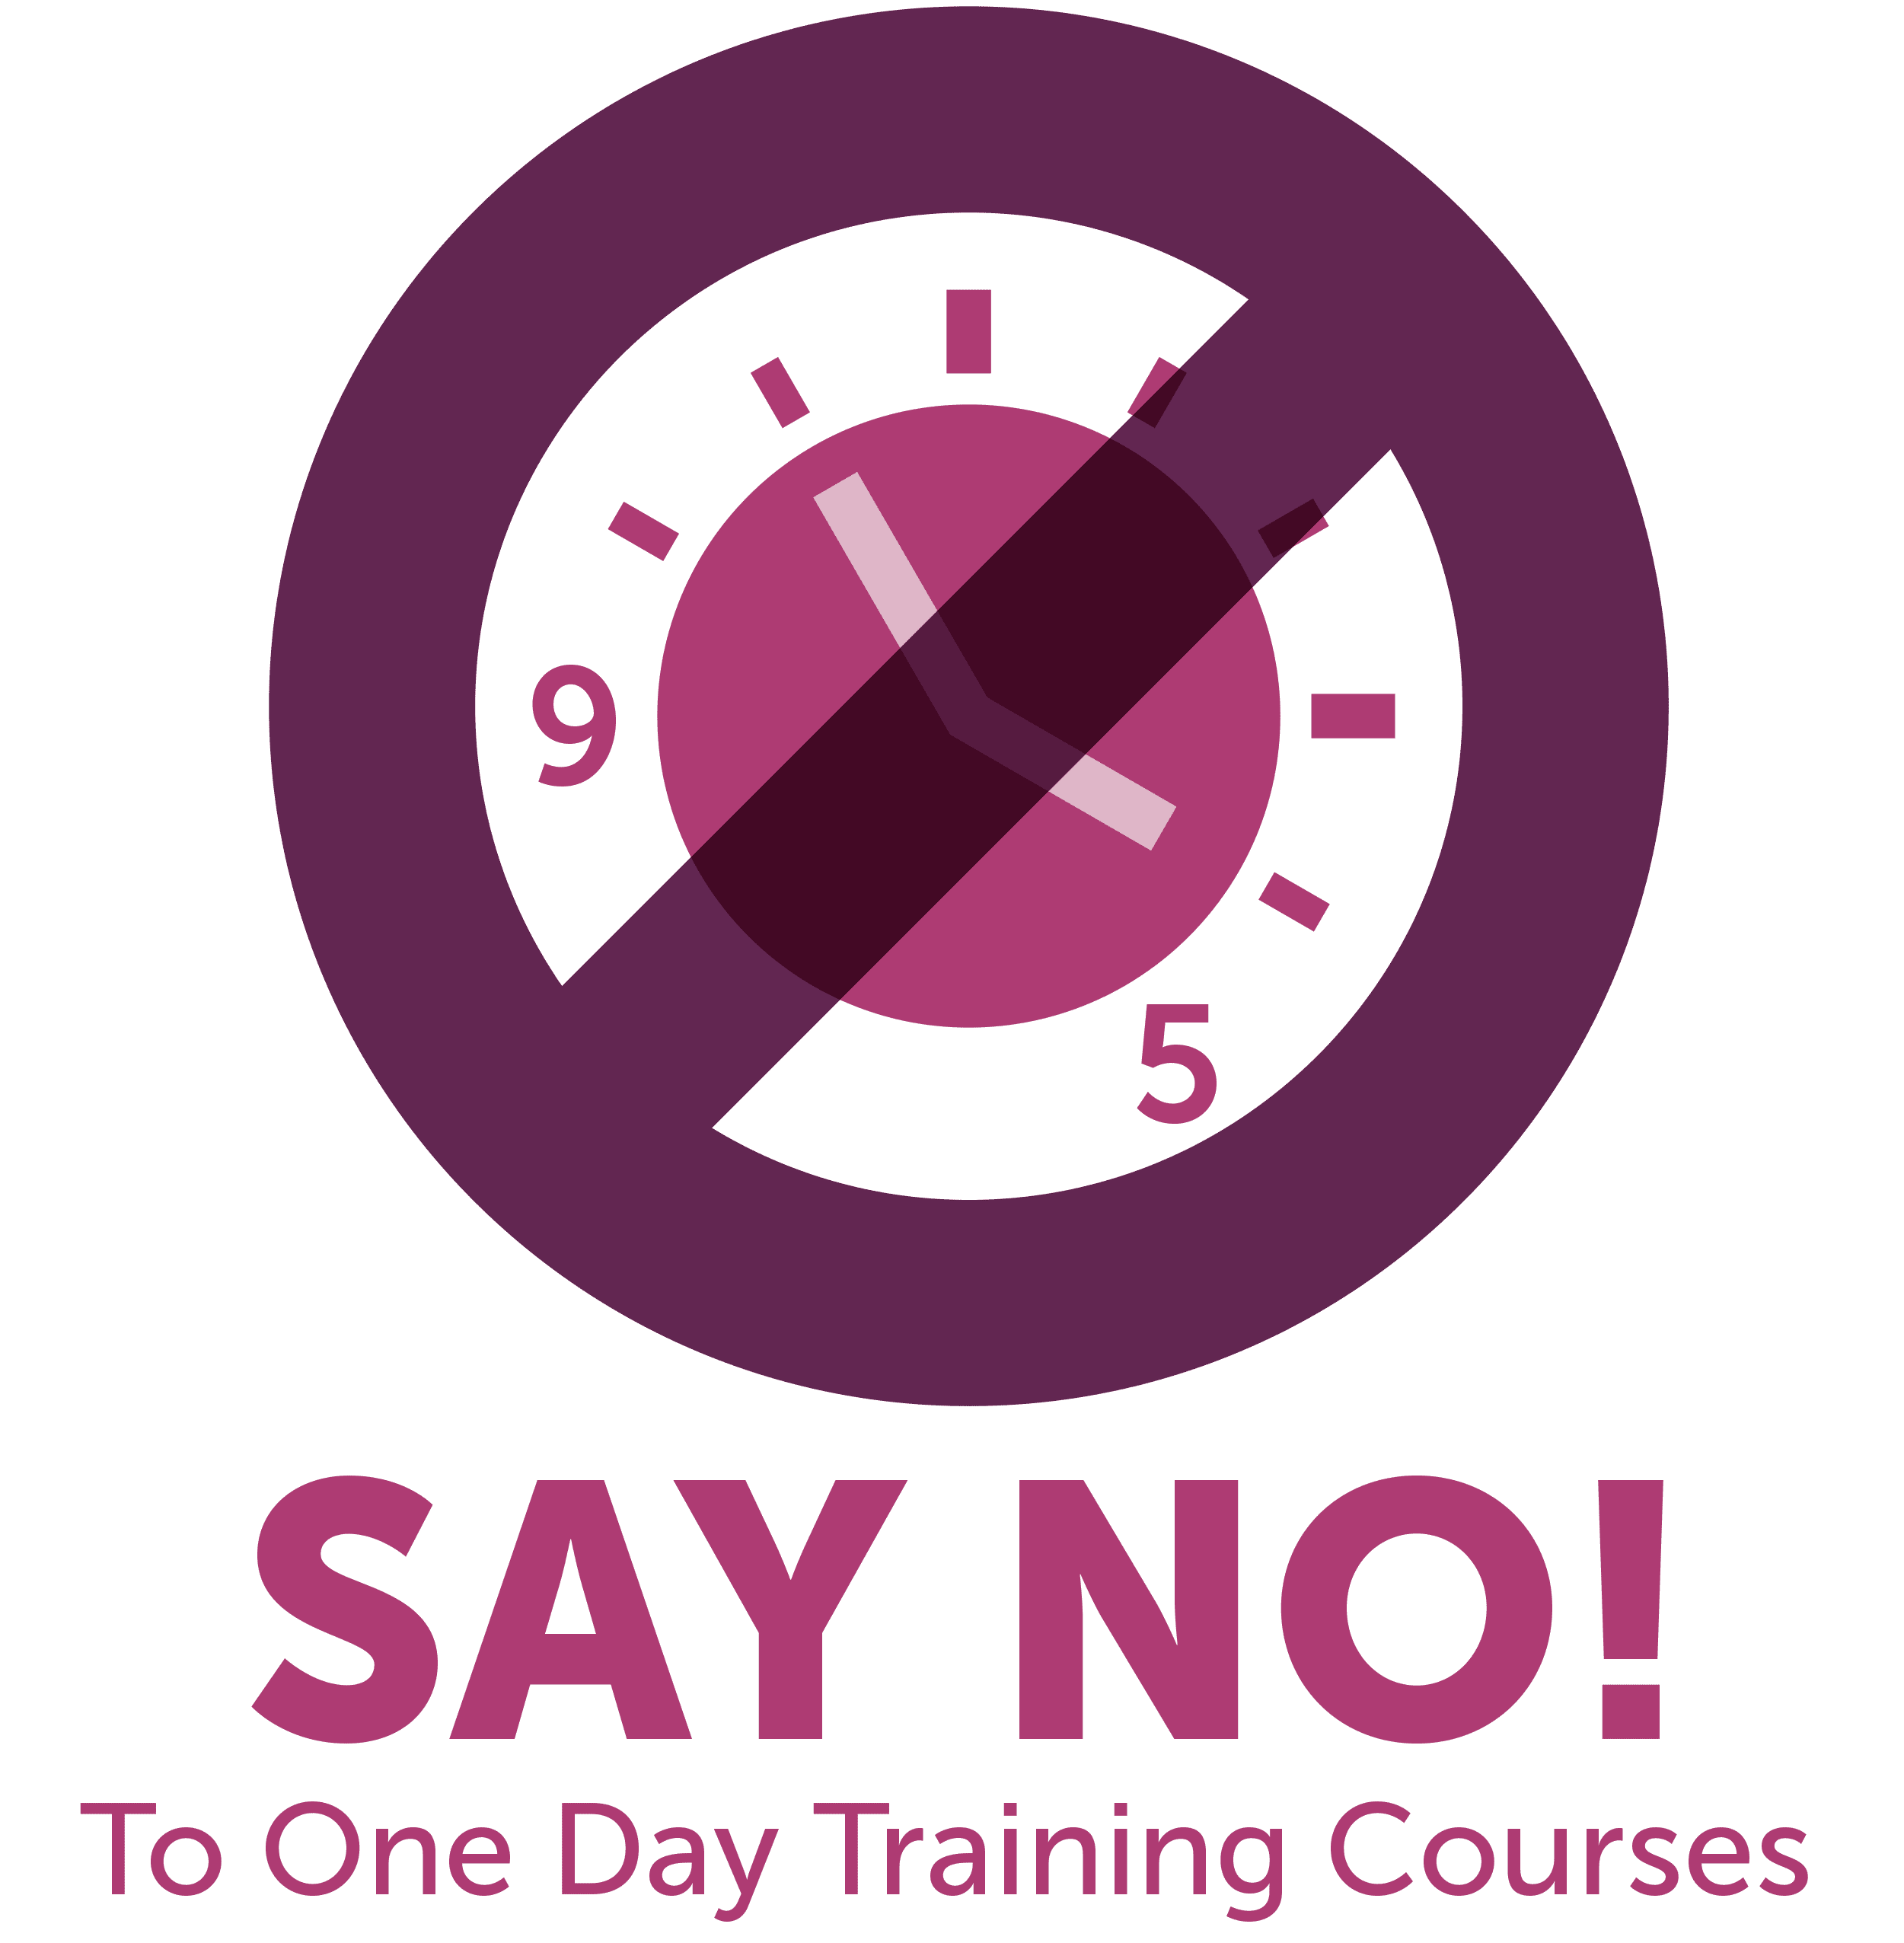 Picture of NO to One Day Training Courses Clock